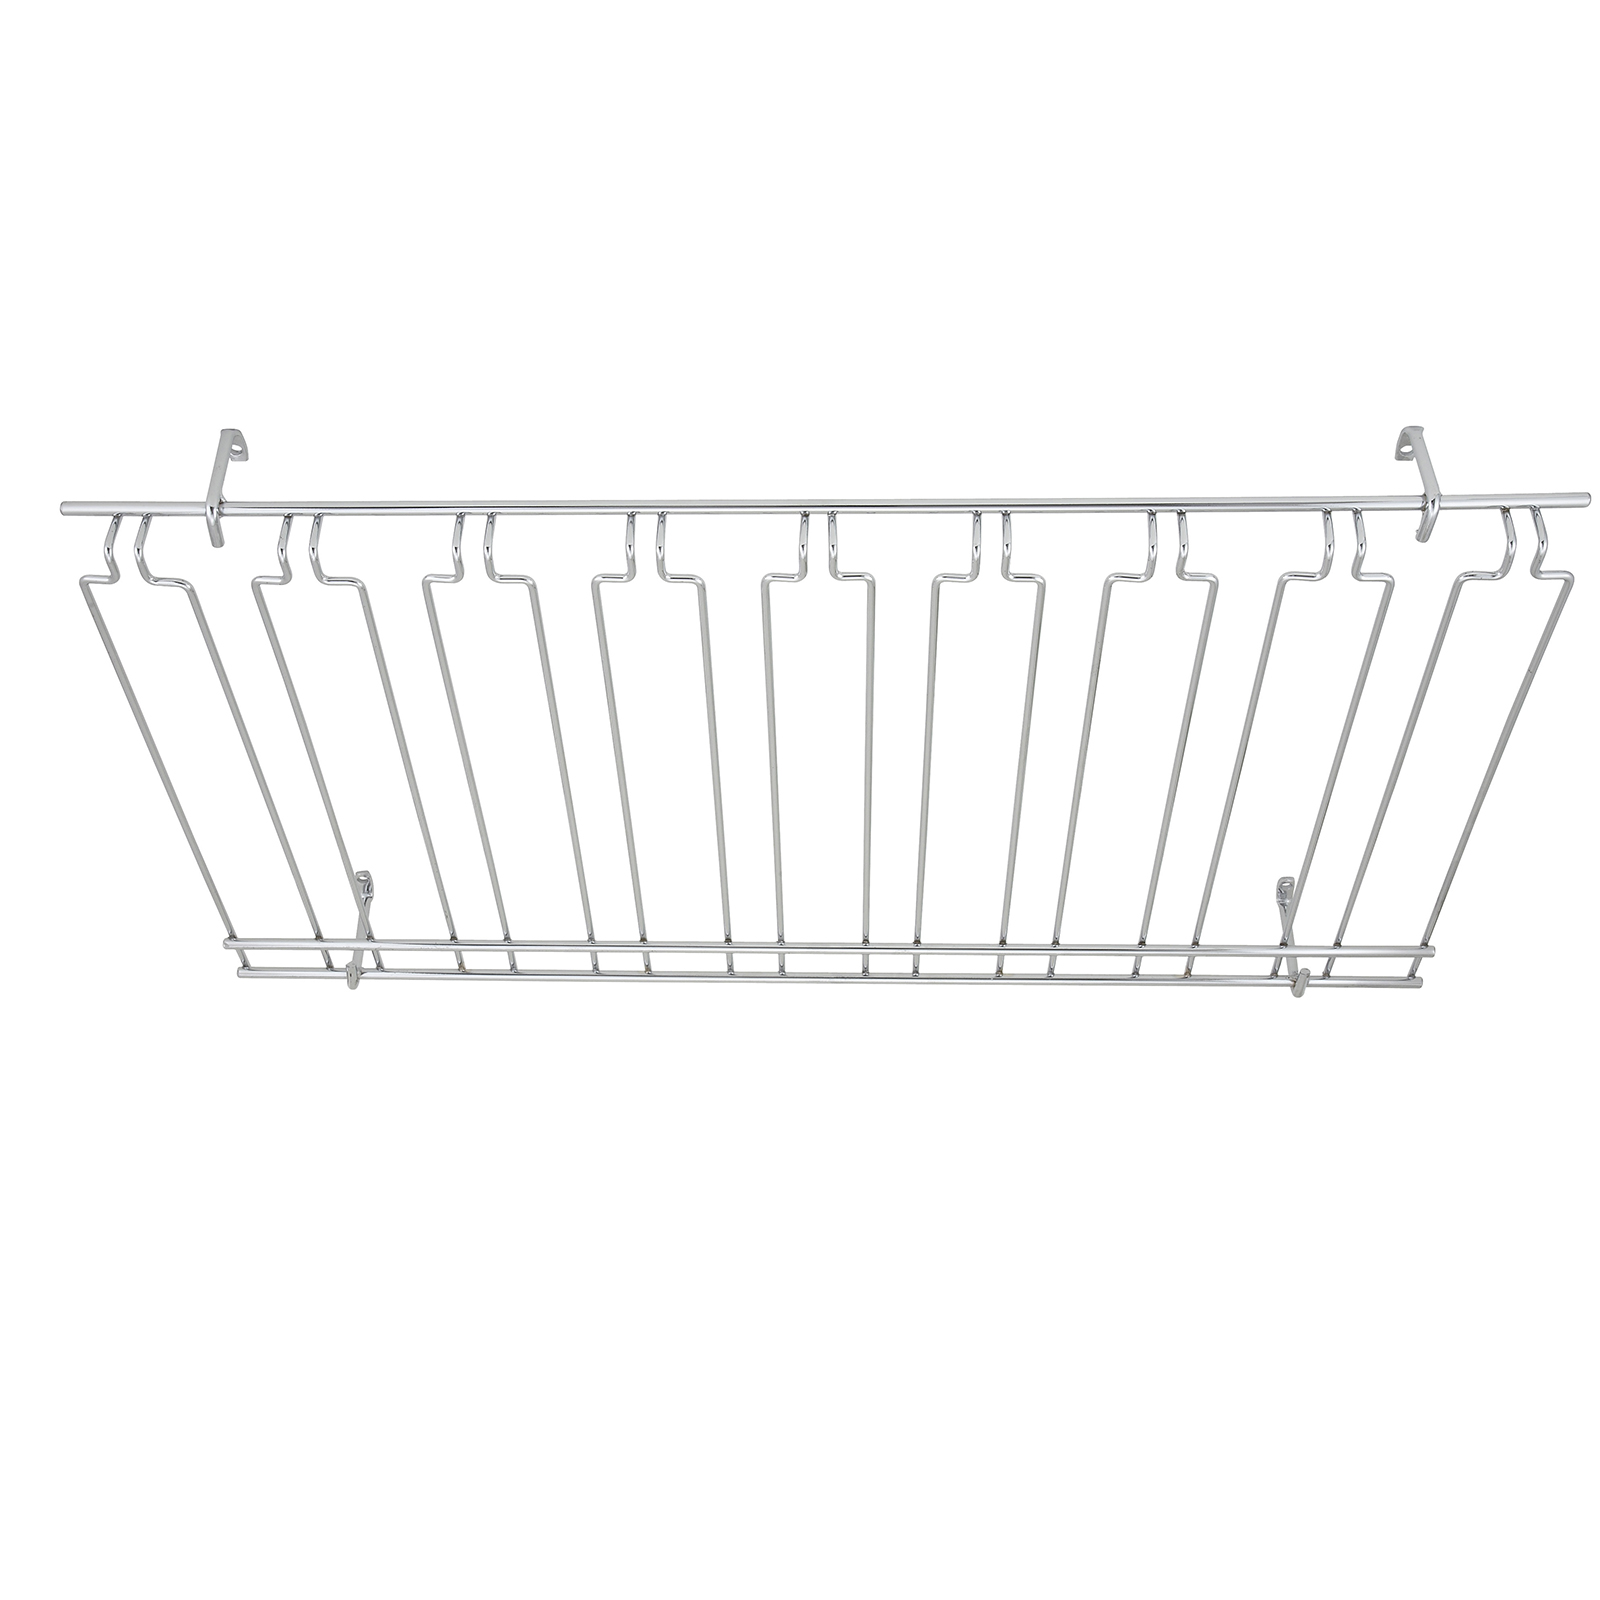 Winco GHC-1836 glass rack, hanging